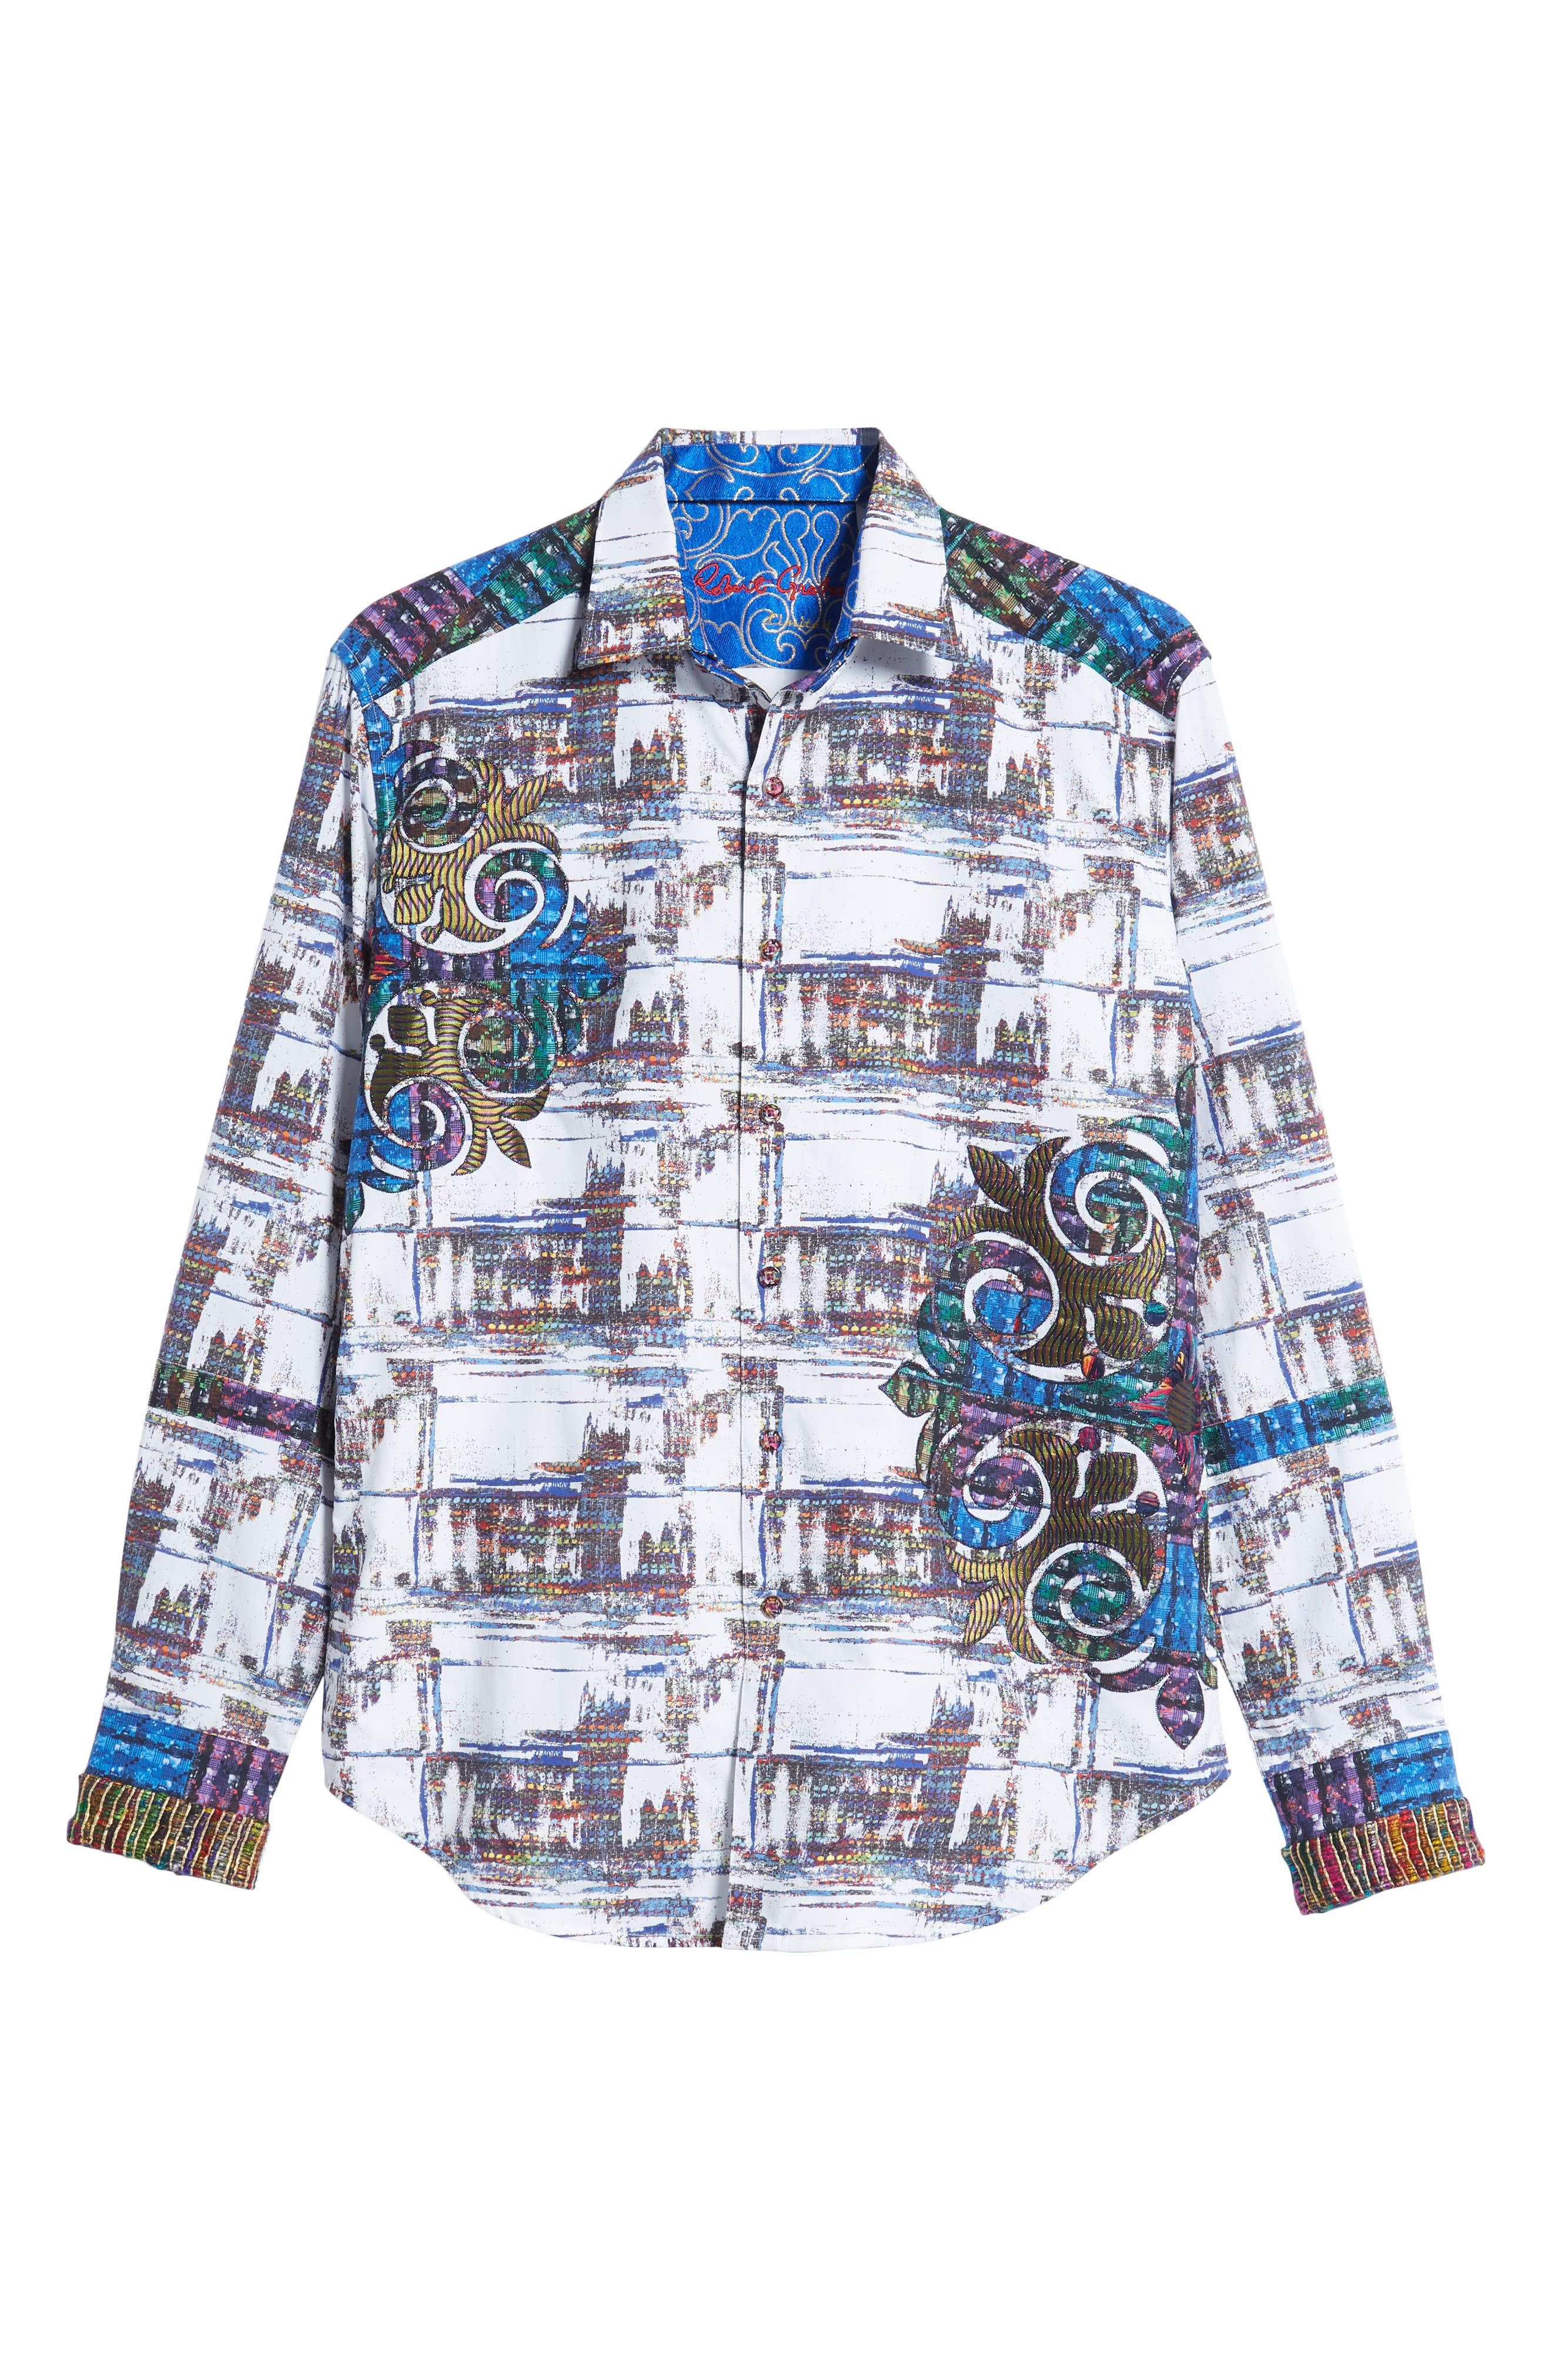 Distinct Palate Limited Edition Classic Fit Sport Shirt,                             Alternate thumbnail 6, color,                             MULTI